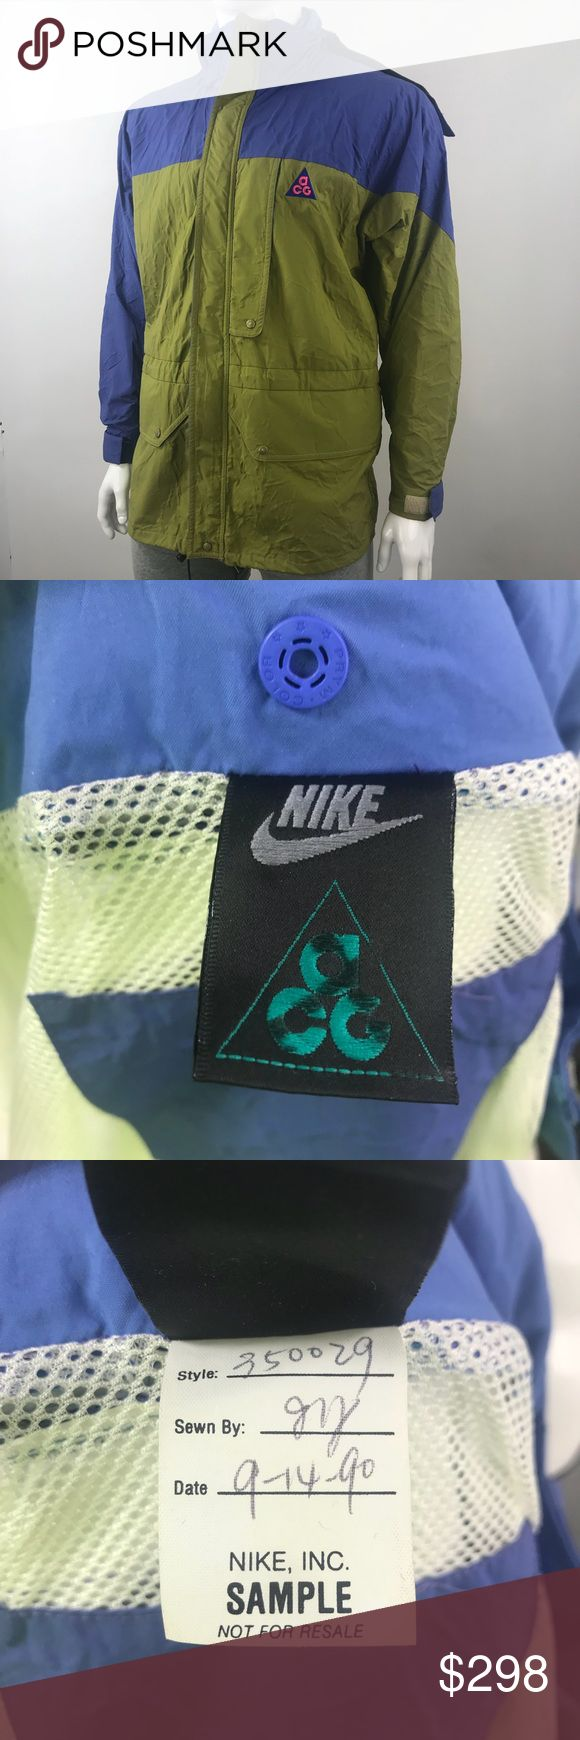 Vintage Nike ACG Jacket w Hood Sample Men XL 1990s Vintage  Nike  ACG  Jacket w Hood  Sample Men's XL  1990s Please look at all pictures This is a Vintage Item that may have discoloration Overall Very good condition for age, Rare to have Hood with Jacket! Nike ACG Jackets & Coats Performance Jackets